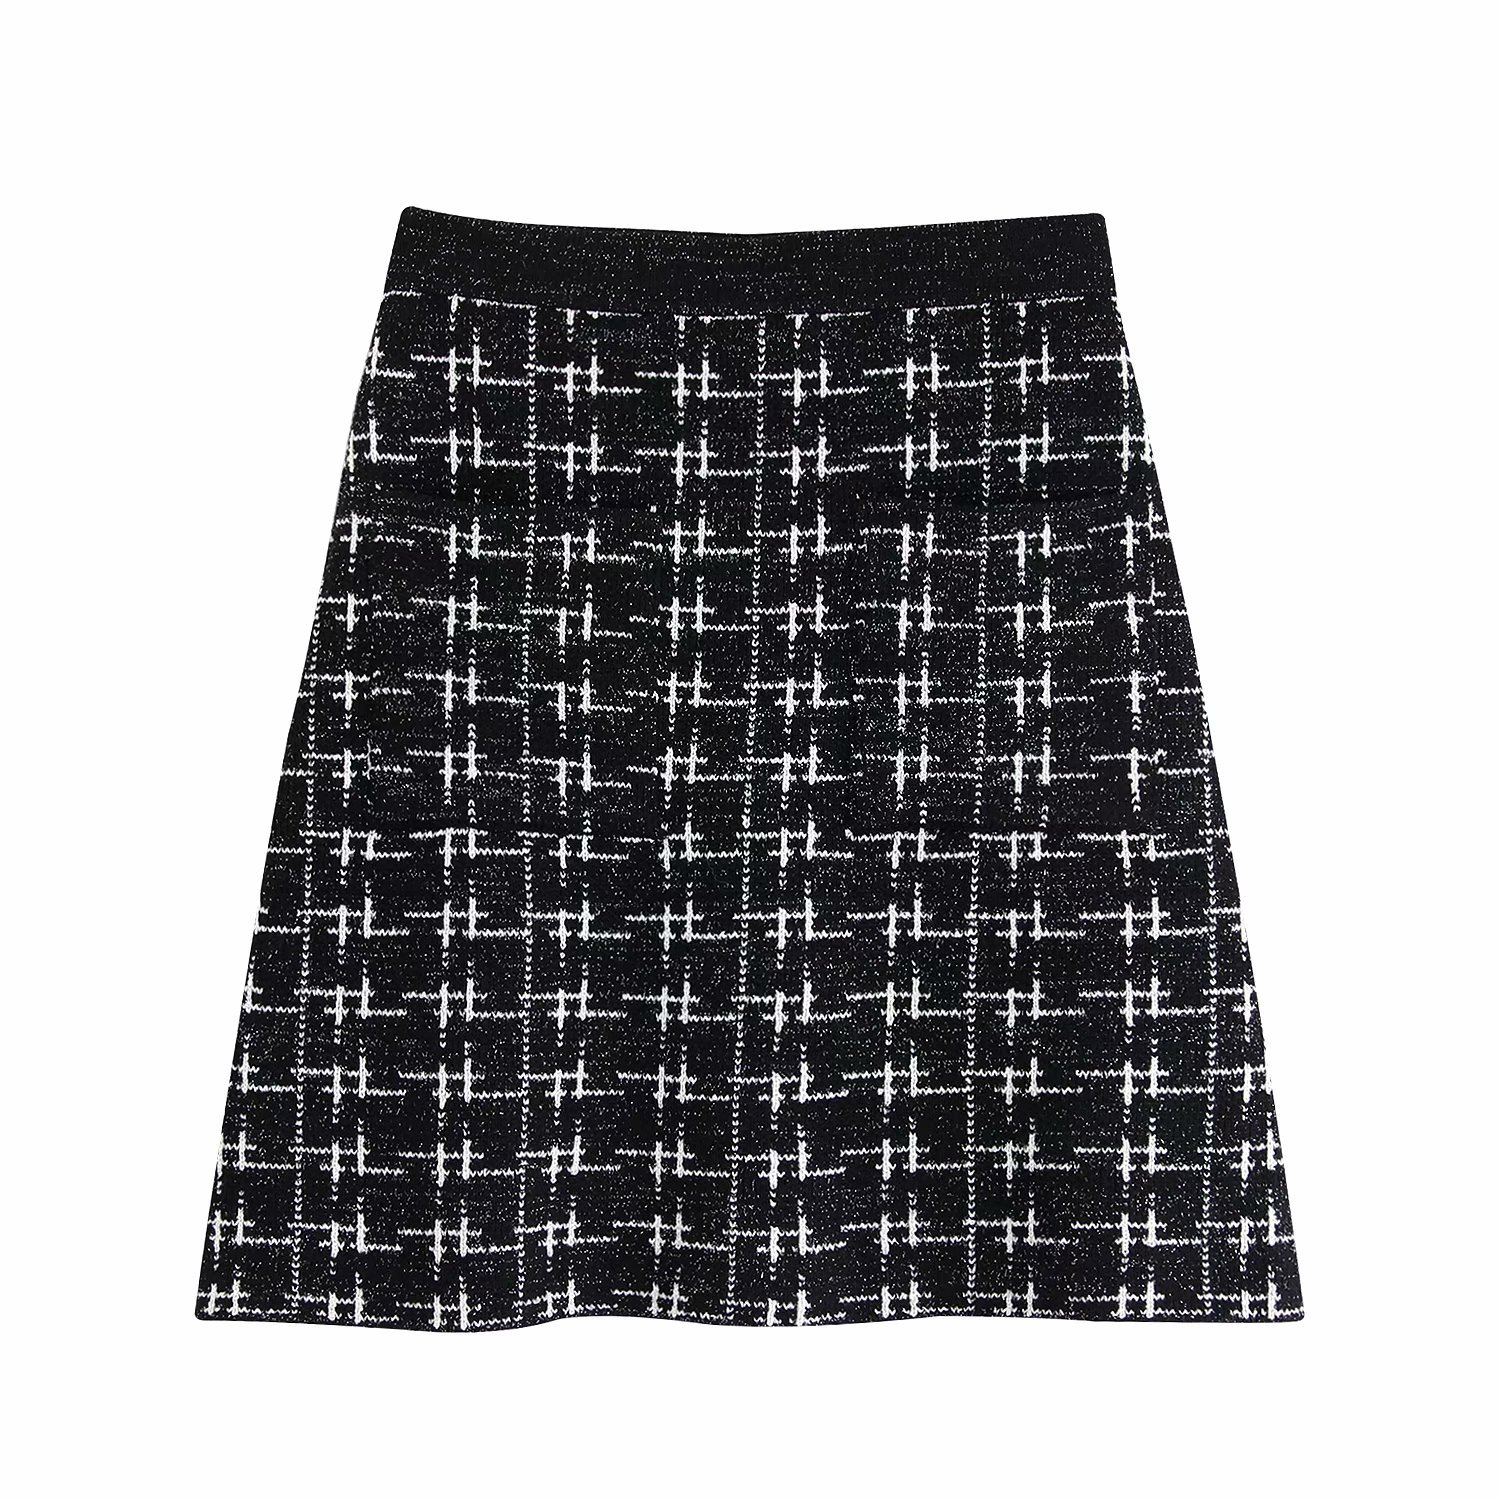 WOMEN'S Dress 2019 Autumn Metal Color Line Plaid High-waisted Base Knitted Skirt WOMEN'S Dress